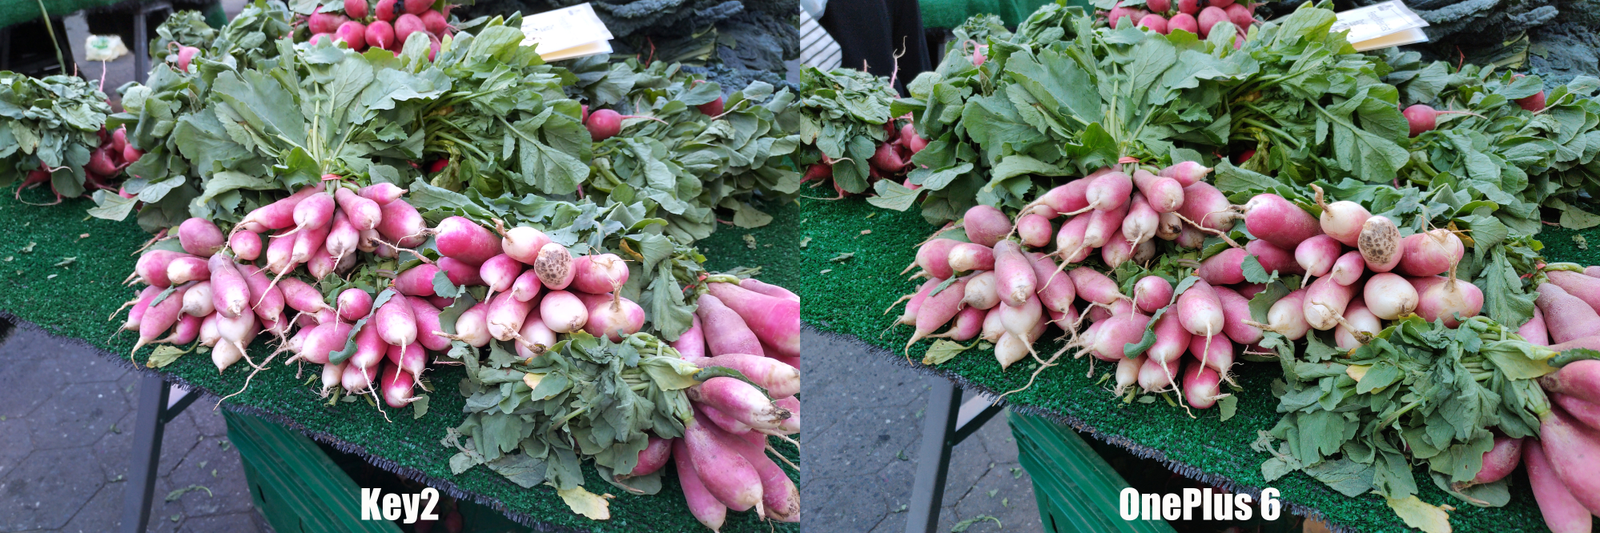 The Key2 does relatively well in bright light, but you can still see a few blown out white spots on the radishes.